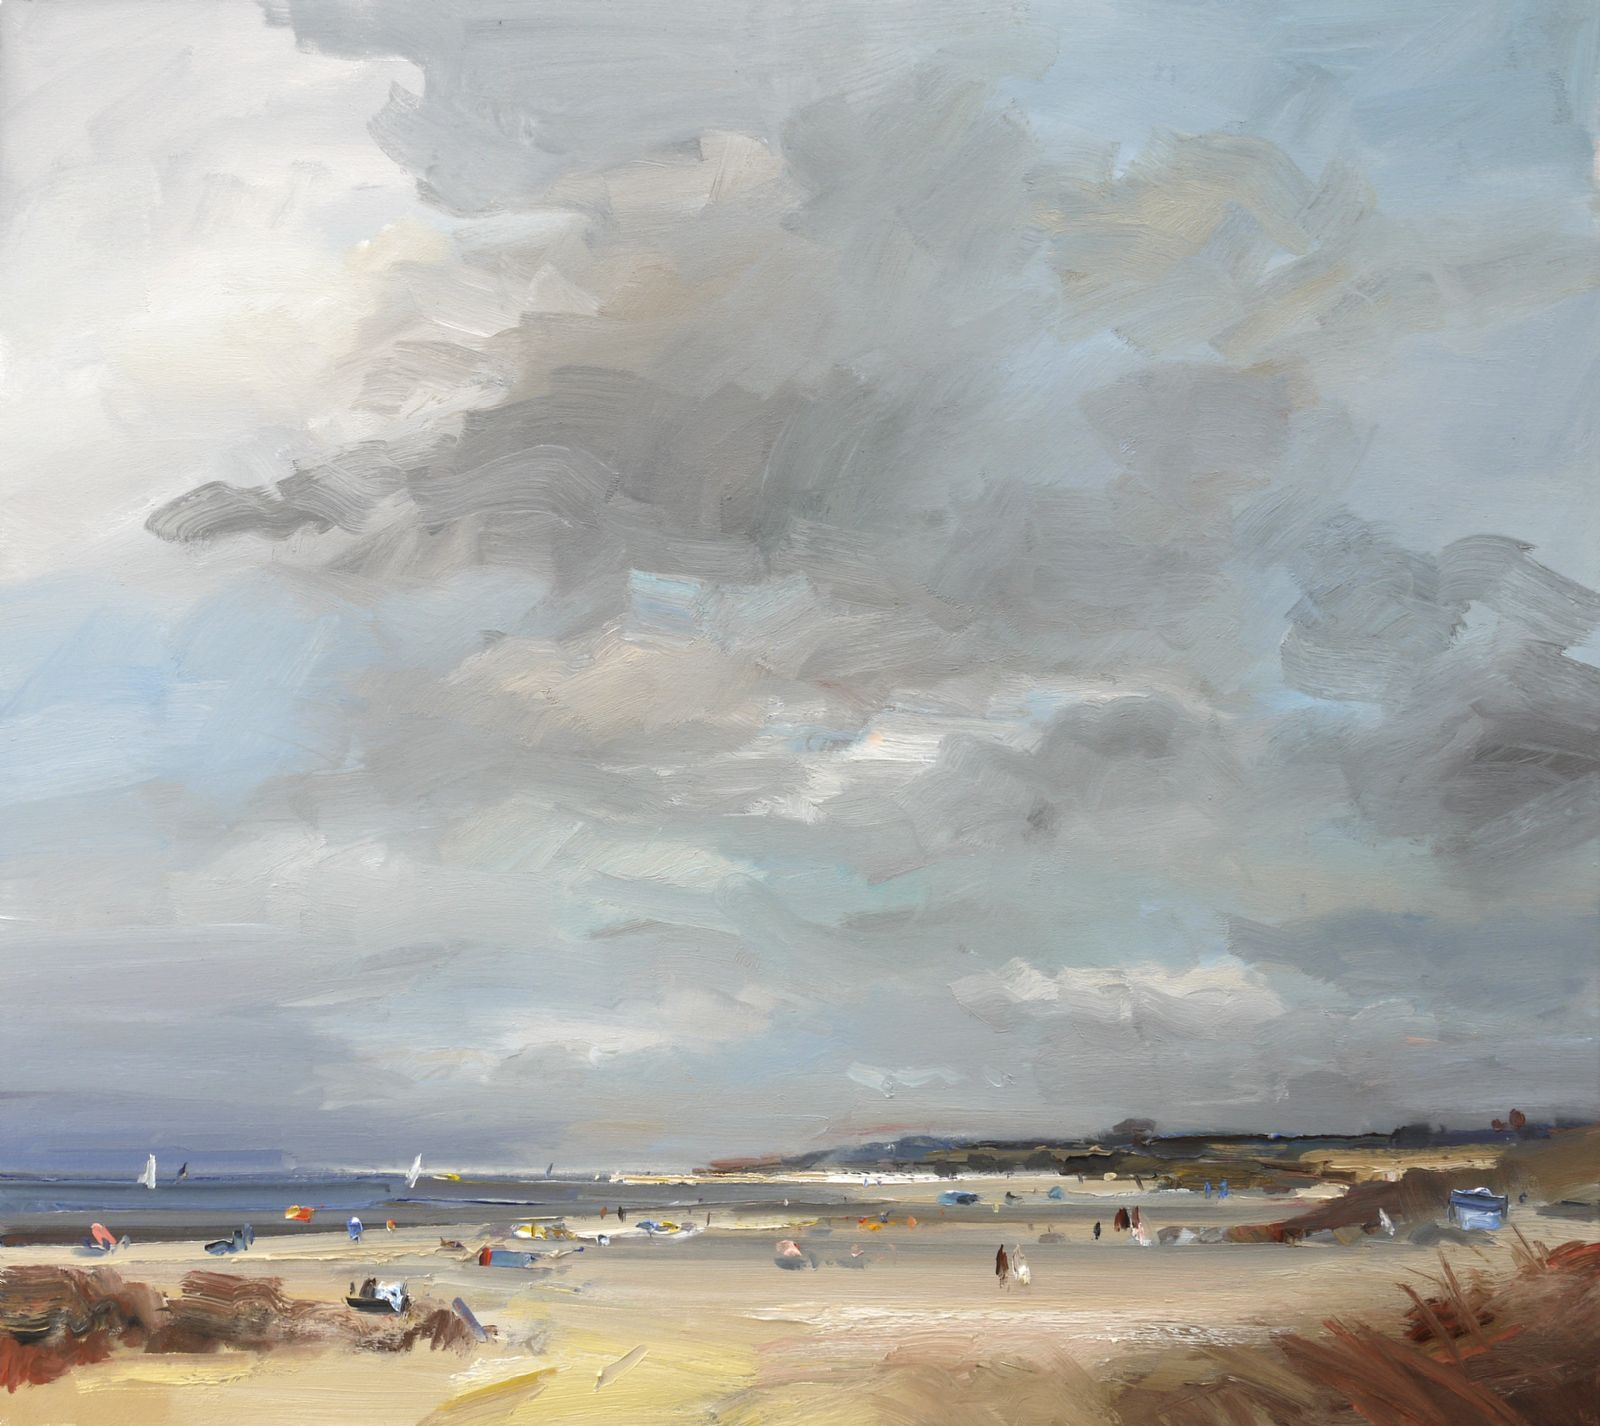 Sunny Intervals and a Gentle Breeze by David Atkins